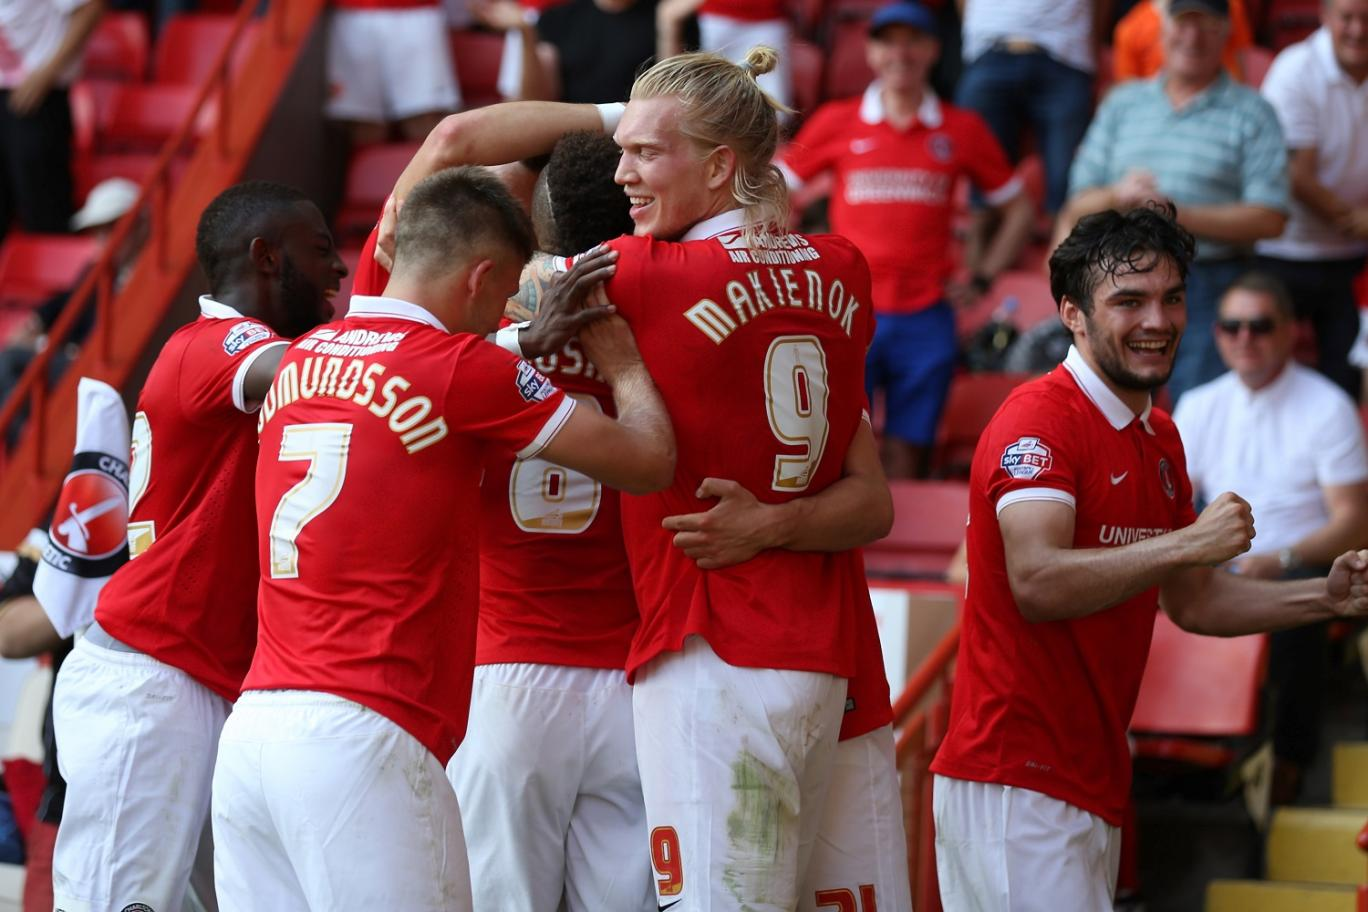 MATCH PREVIEW: Derby County vs Charlton Athletic